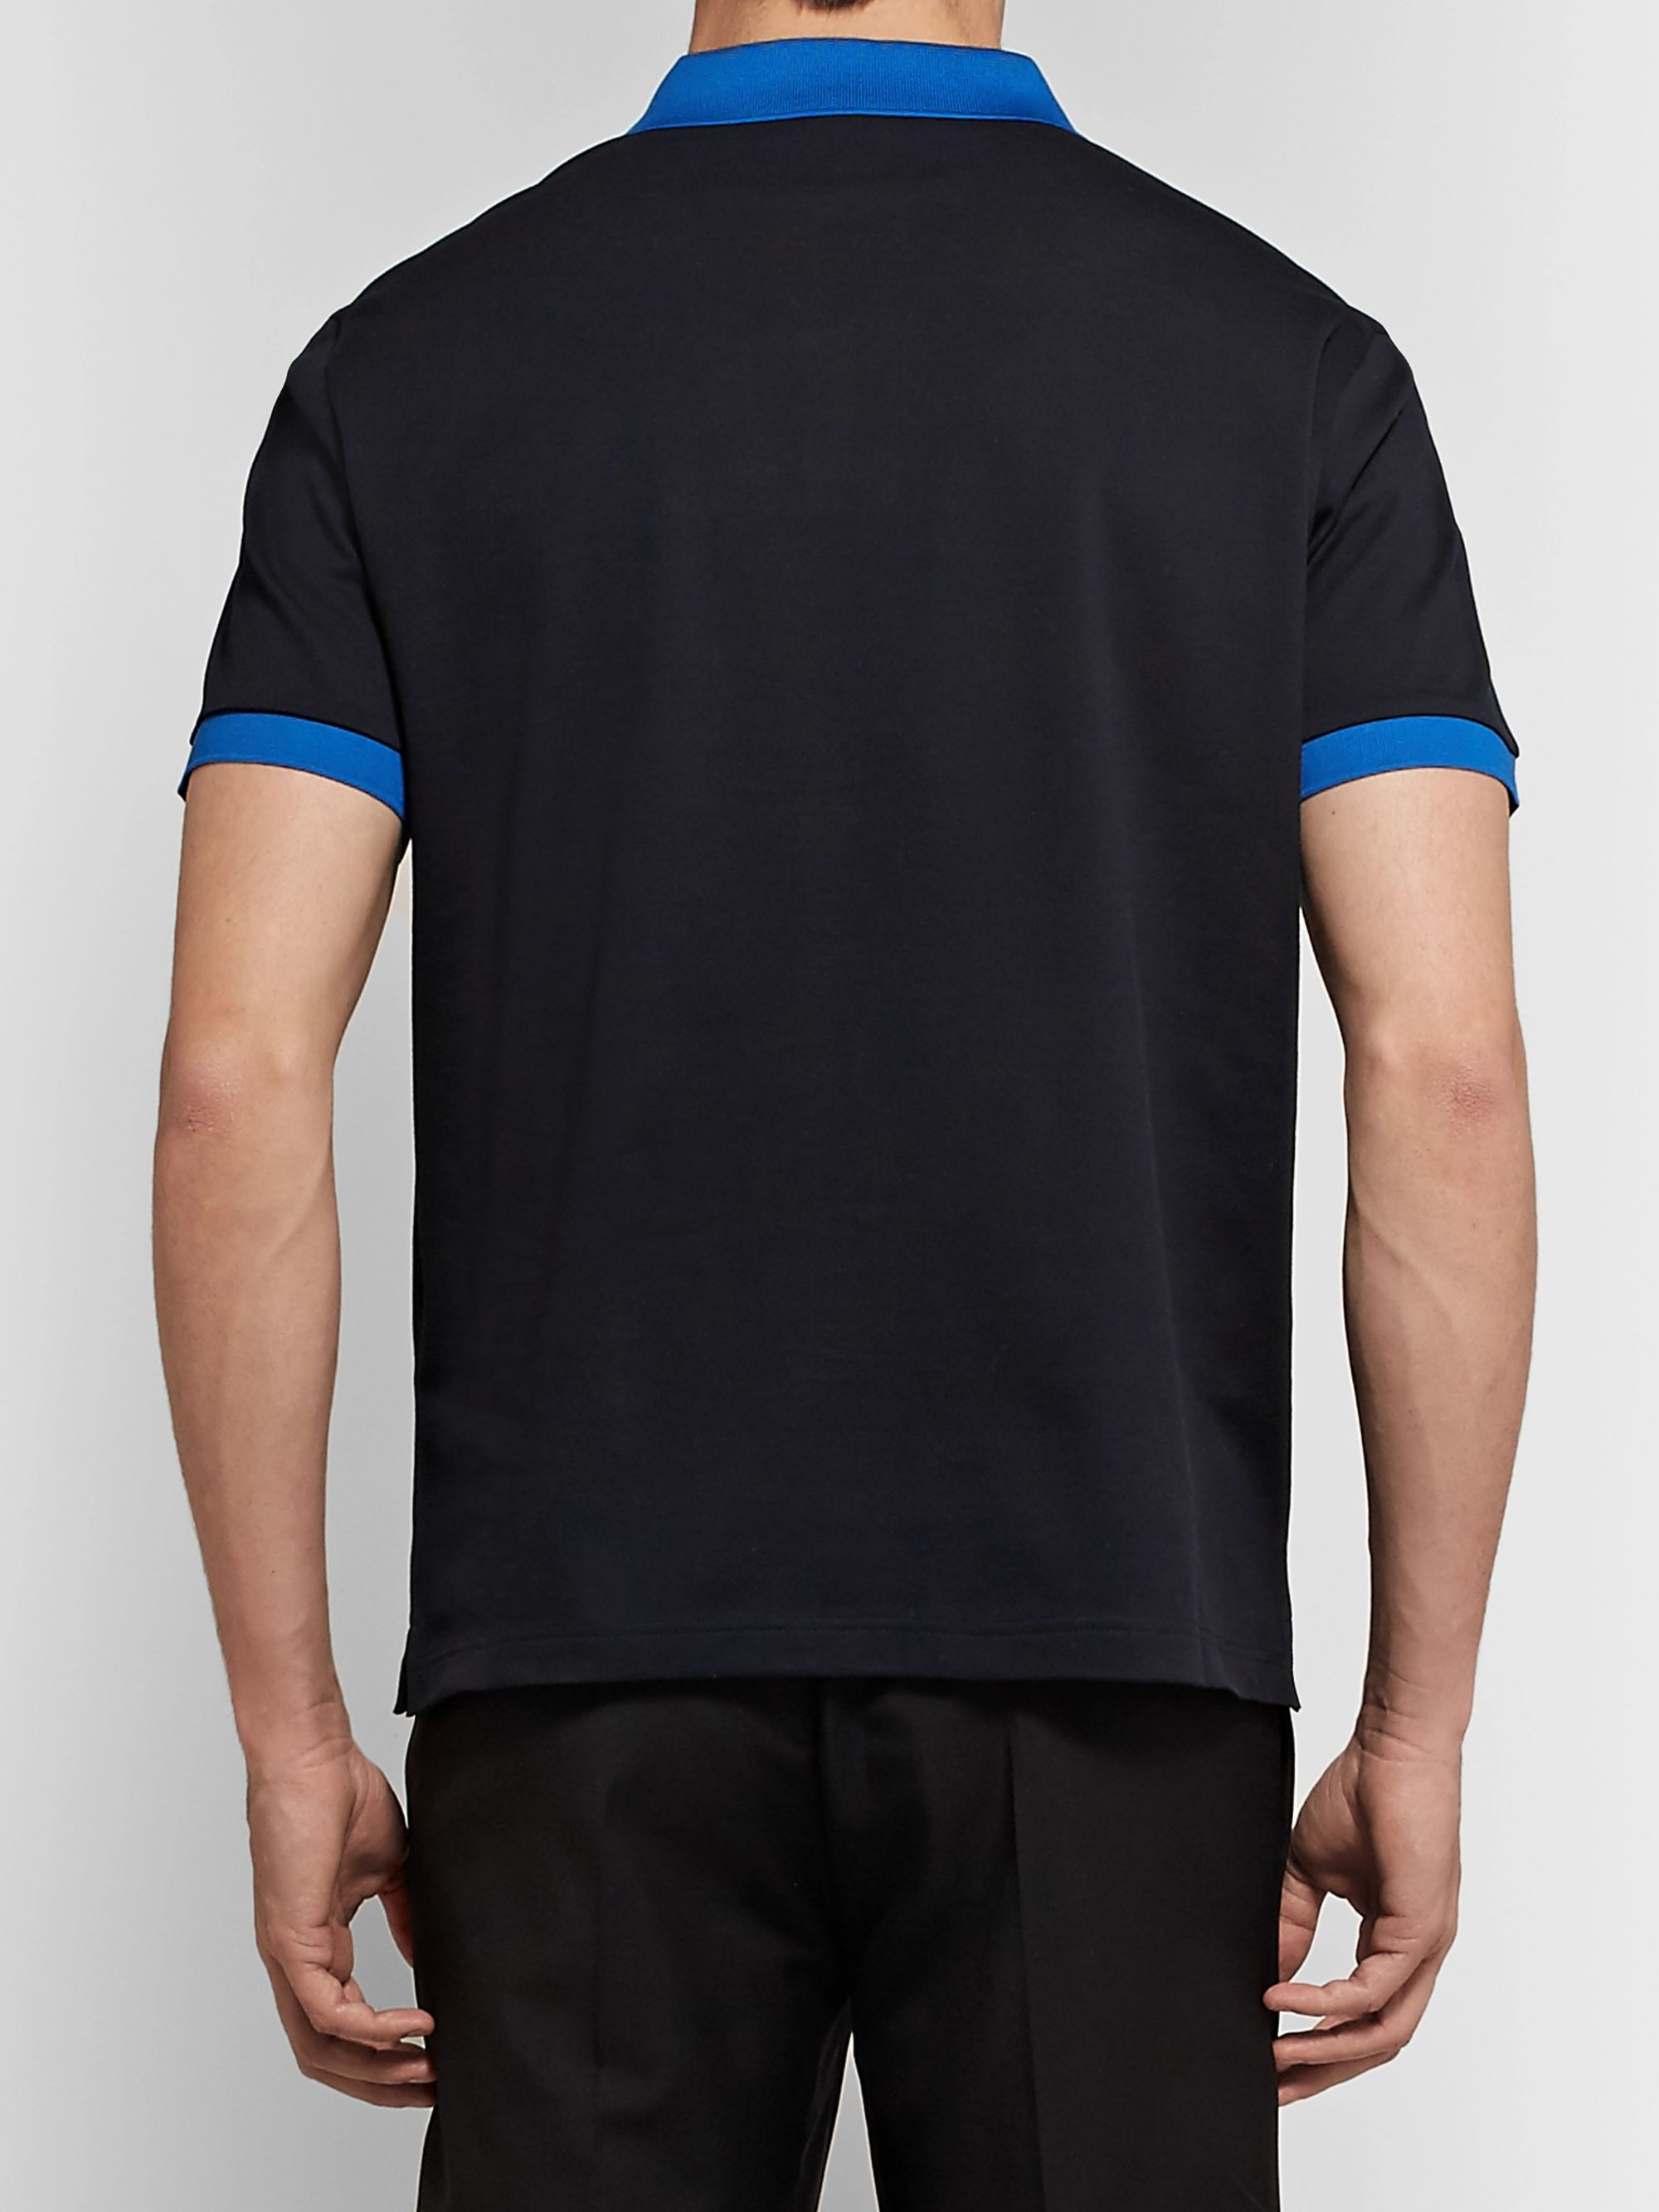 Prada Logo-Appliquéd Contrast-Tipped Cotton-Piqué Polo Shirt